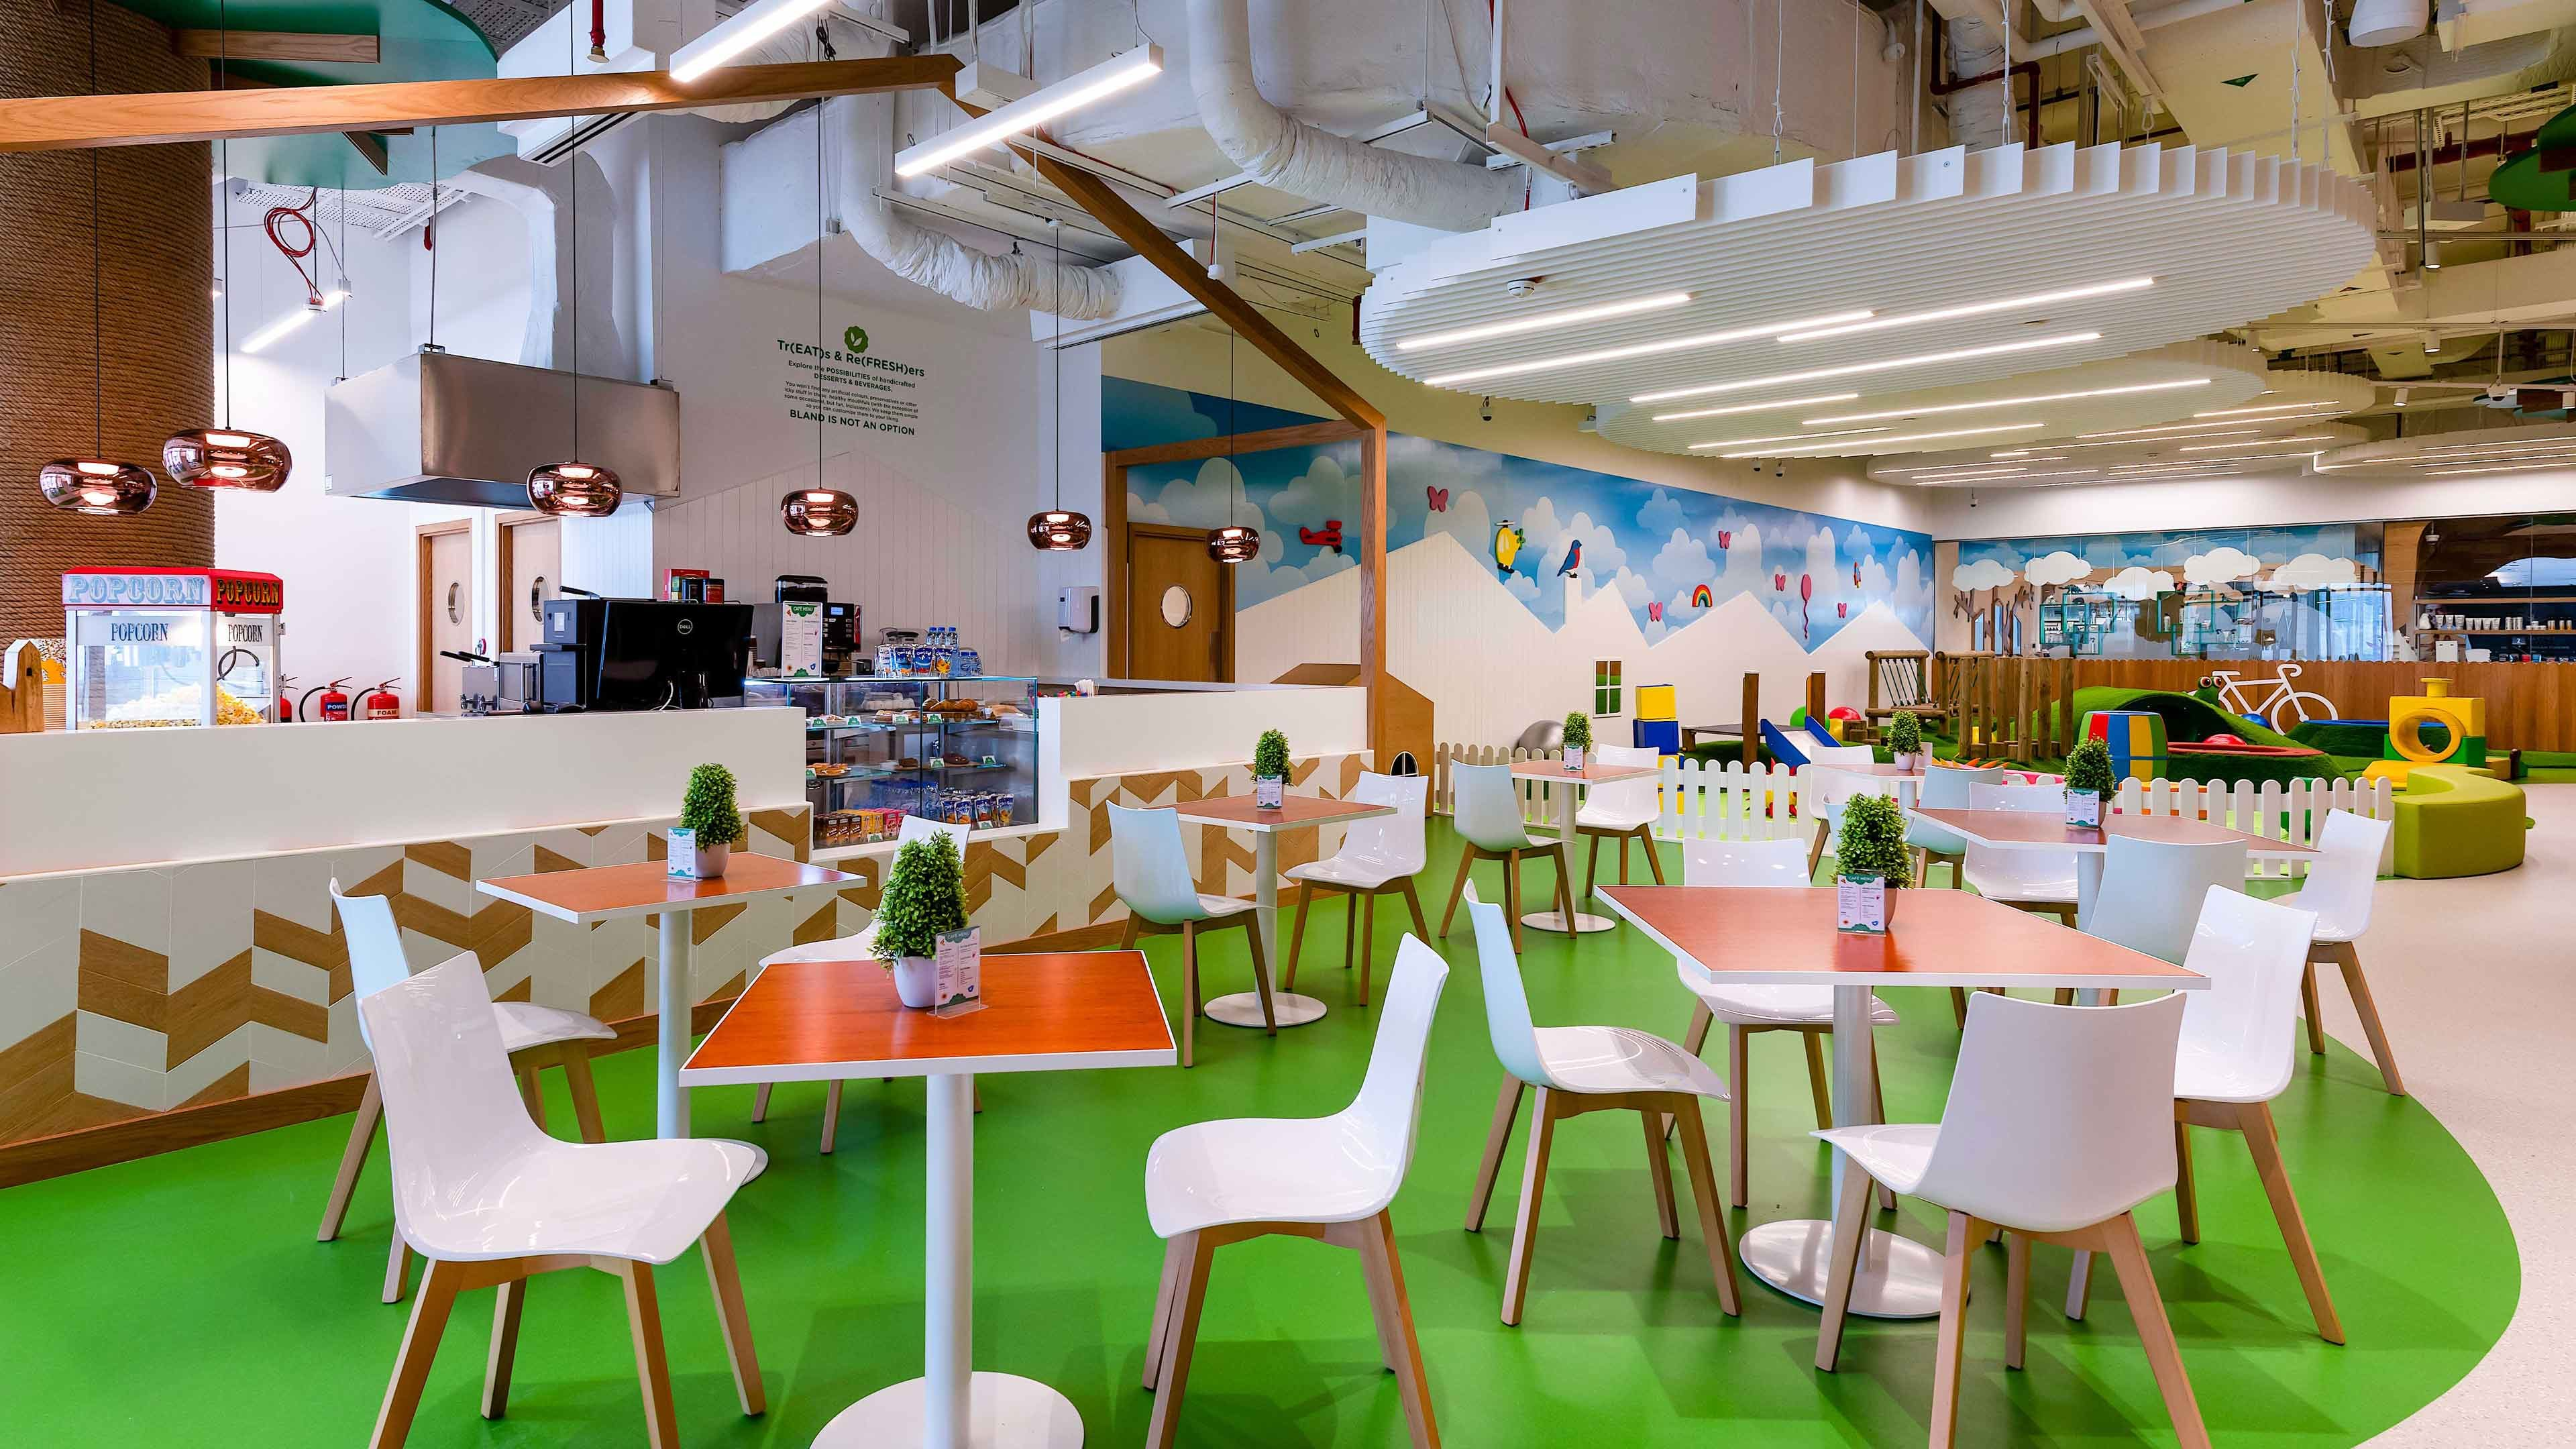 Architectural Lighting Design Indoor Children's Playground Cafe Feature Pendants Slotted Linear Ceiling Lights Fun Colourful Interior Studio N